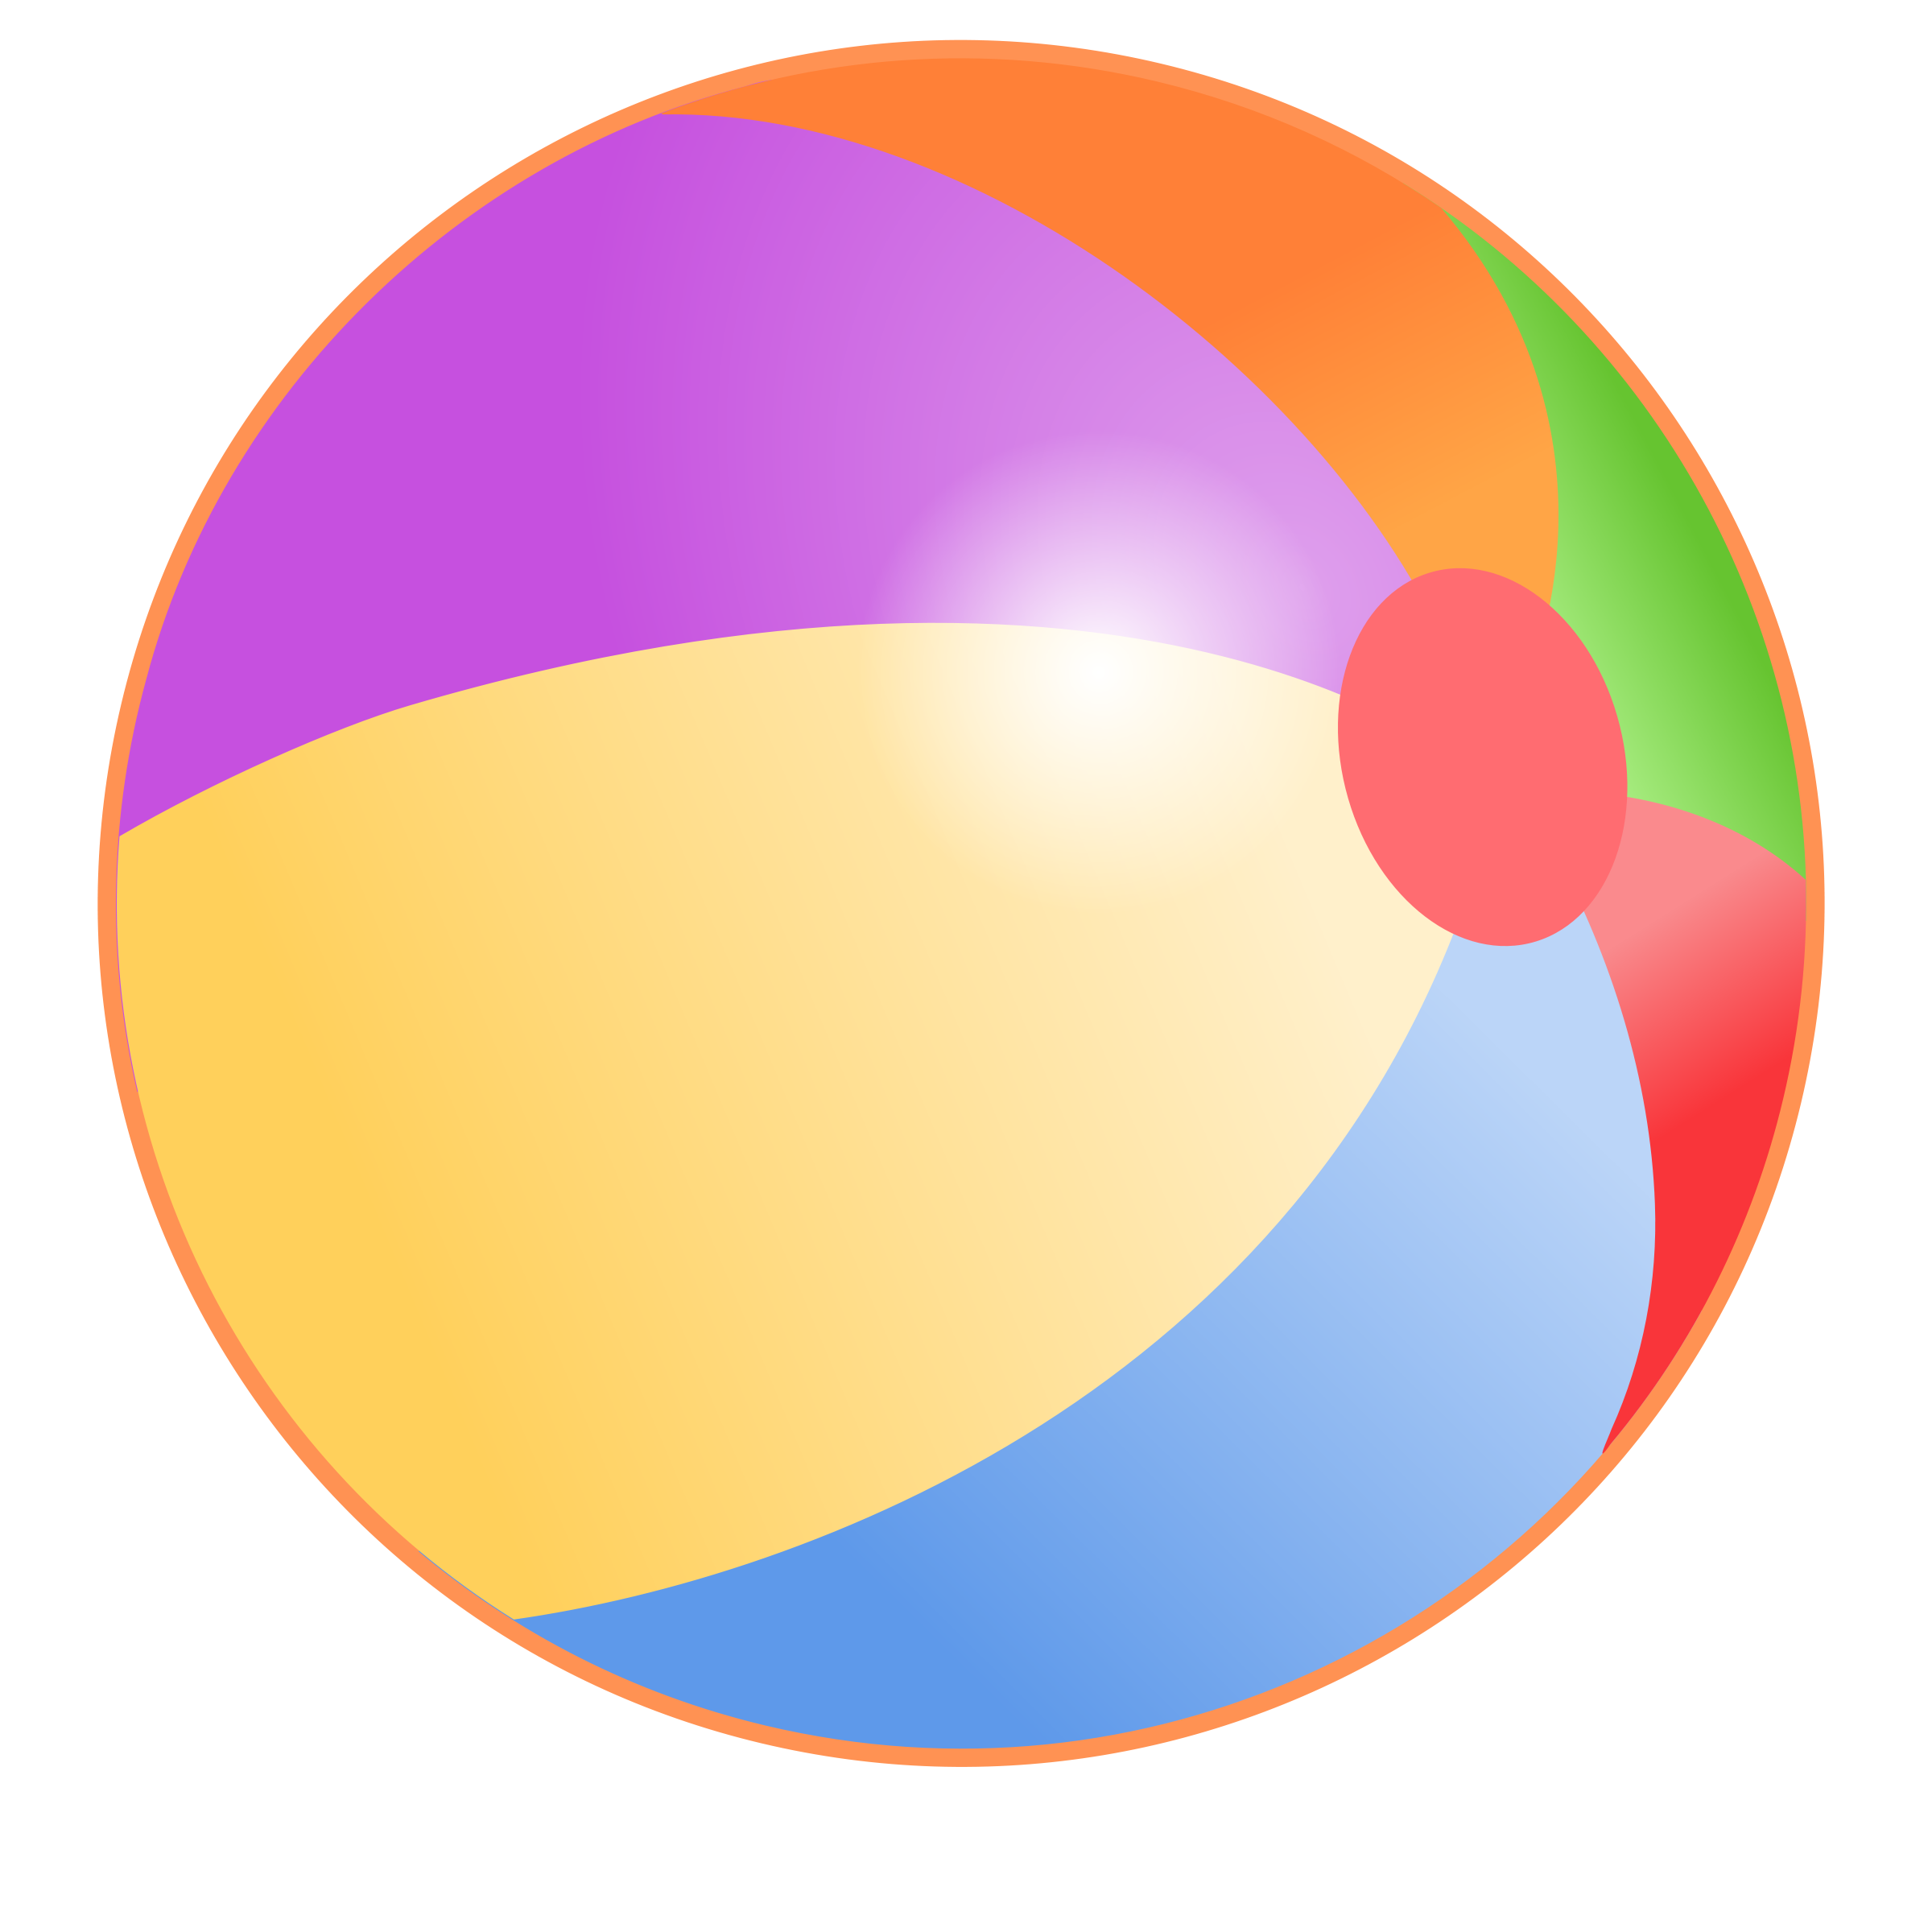 Beach Ball Sports Png image #41214